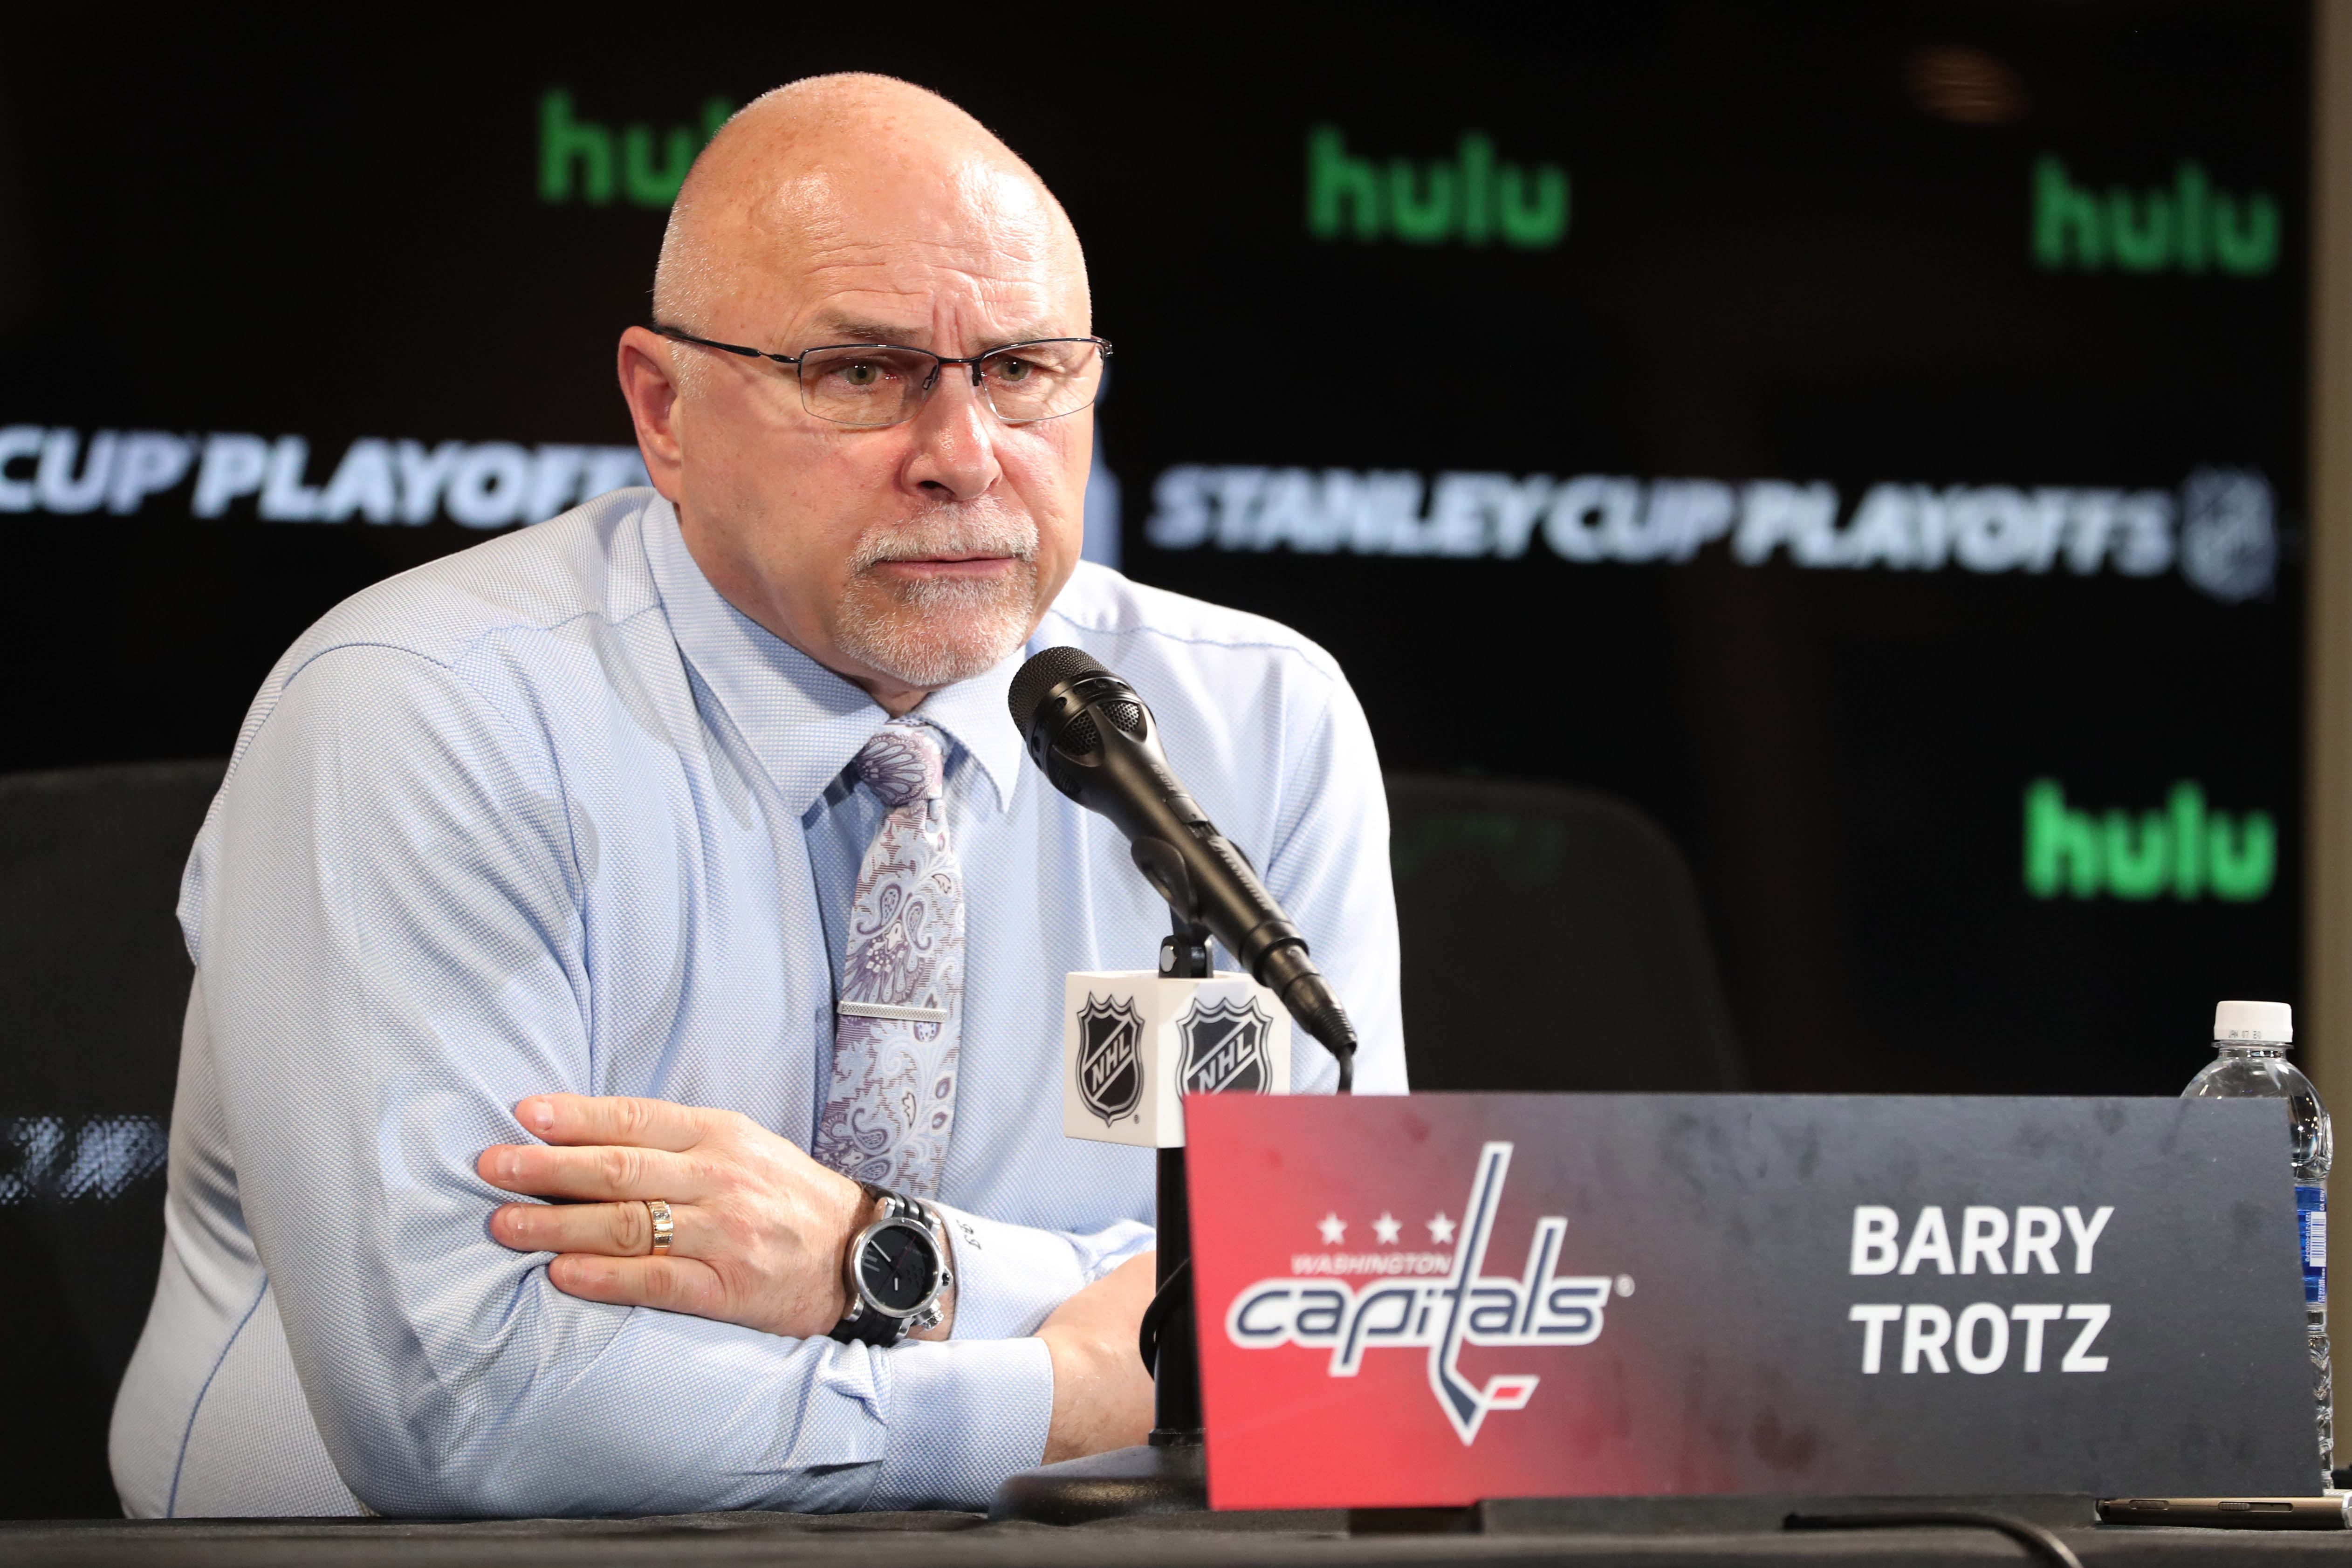 May 11, 2018; Tampa, FL, USA; Washington Capitals head coach Barry Trotz talks with media after game one of the Eastern Conference Final in the 2018 Stanley Cup Playoffs at Amalie Arena. Mandatory Credit: Kim Klement-USA TODAY Sports